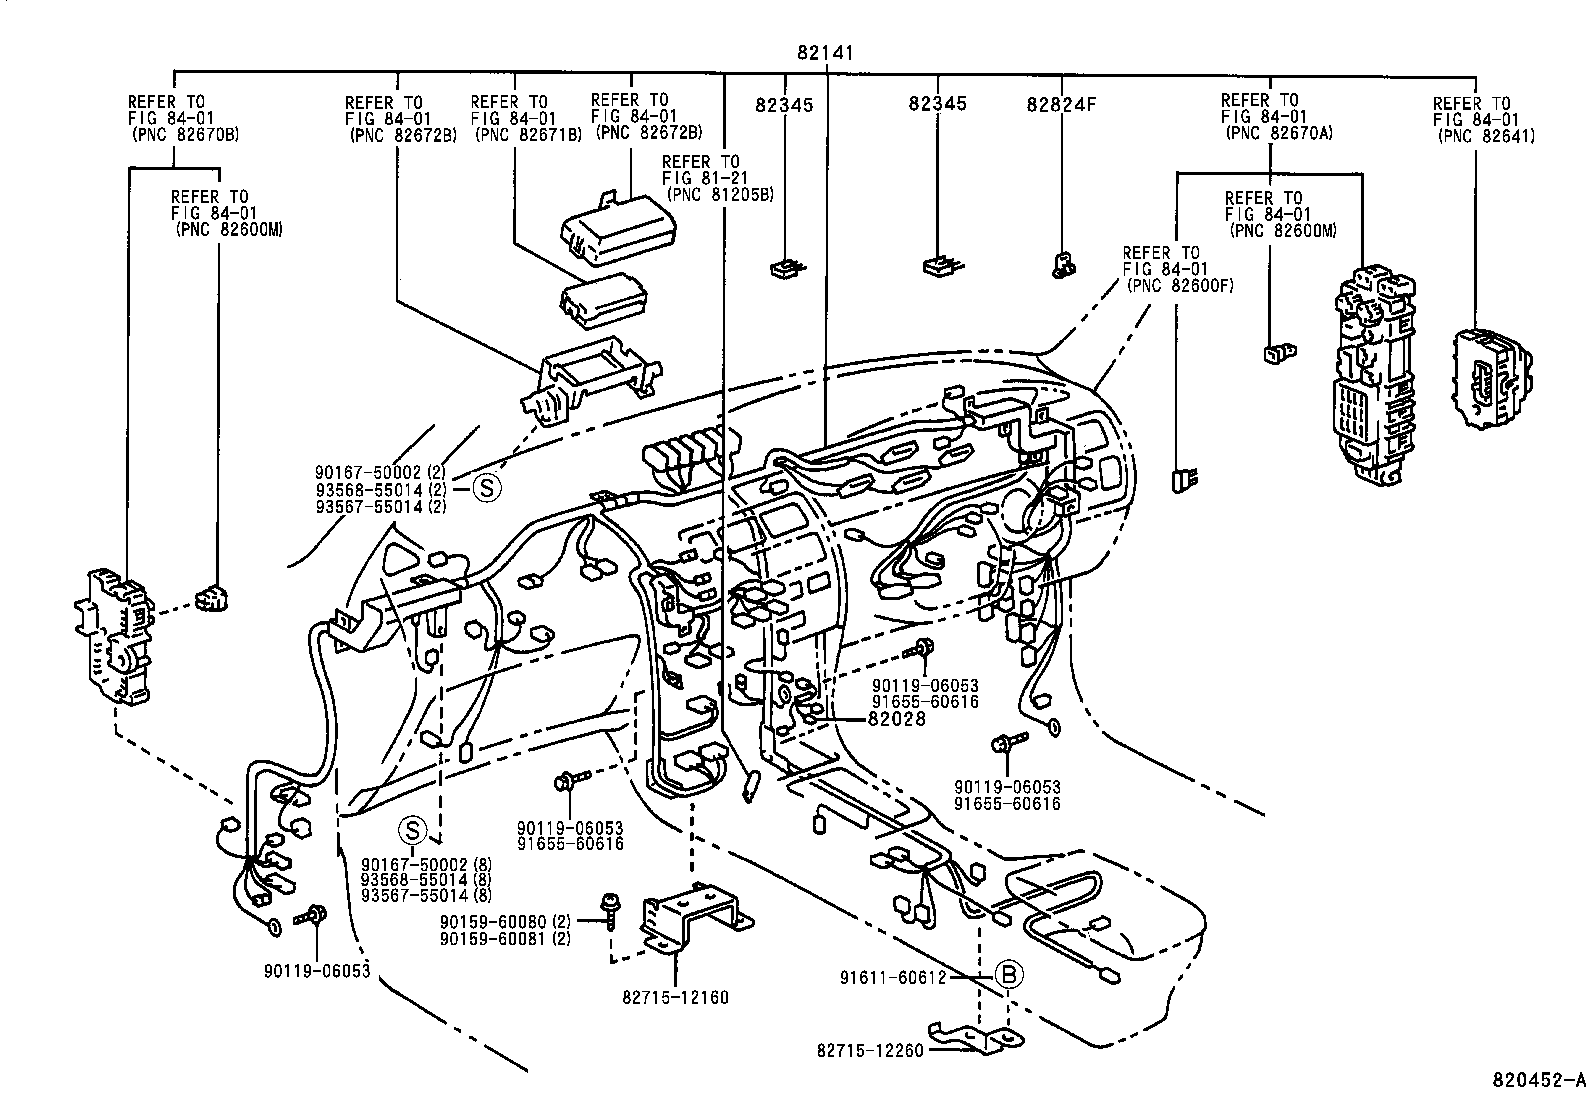 Toyota Altis Meter Wiring Diagram additionally Toyota Liteace Wiring Diagram moreover Toyota Townace Cr27 Wiring Diagram additionally Honda Motorcycle Electrical Connectors further Toyota Ta a Electrical Wiring Diagram. on electrical wiring diagrams toyota townace